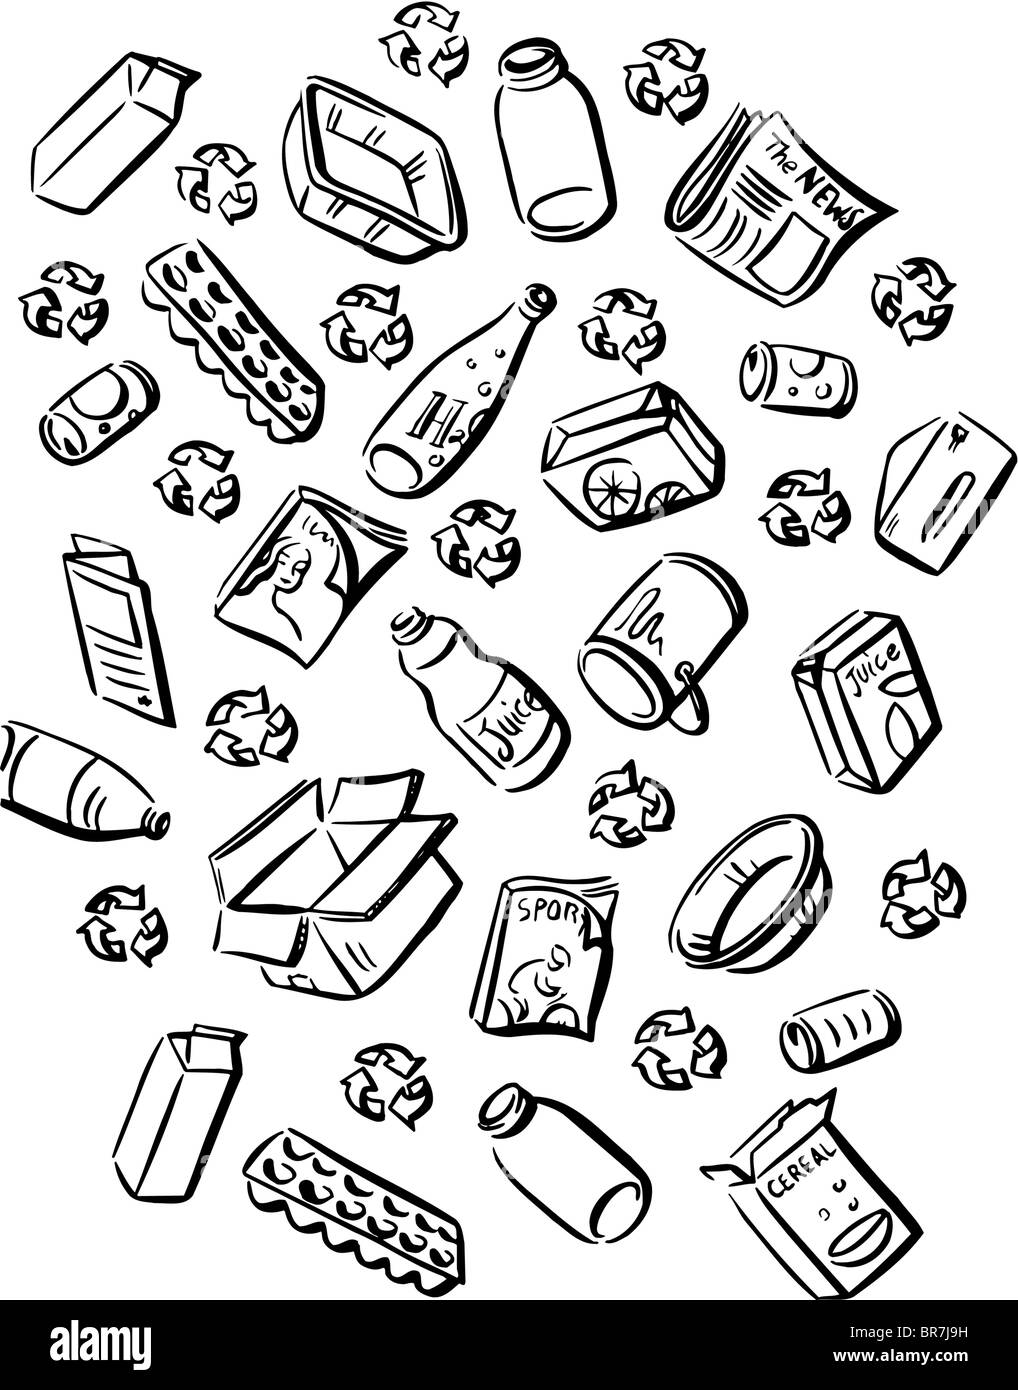 A picture showing recyclable wastes in black and white - Stock Image